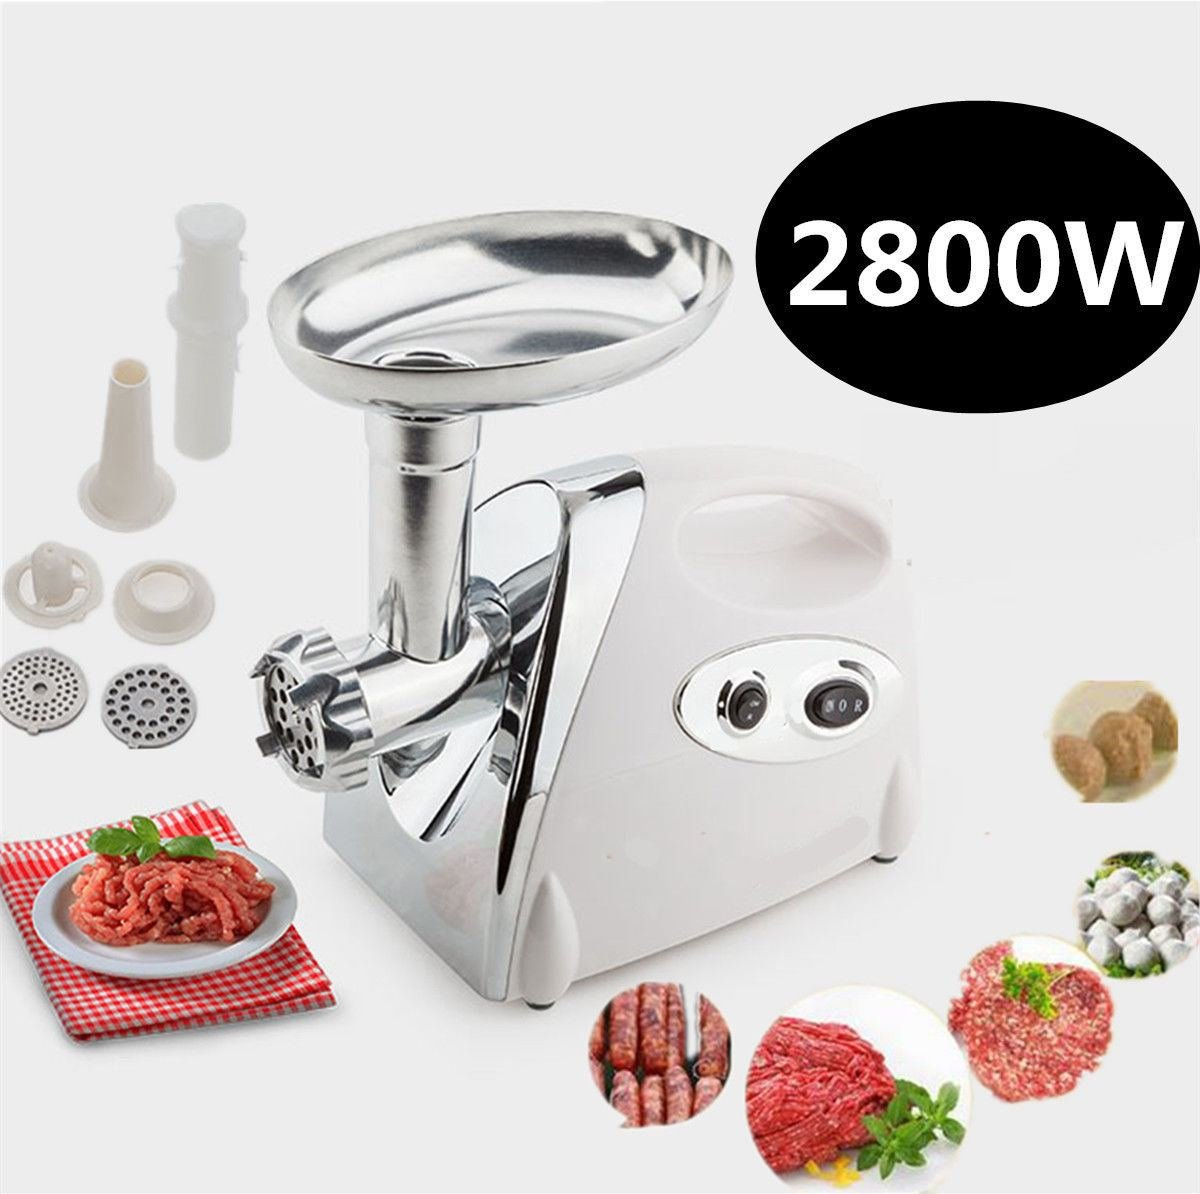 Home&Industrial Electric Meat Grinder Sausage Stuffer Stainless Cutter 2800W US